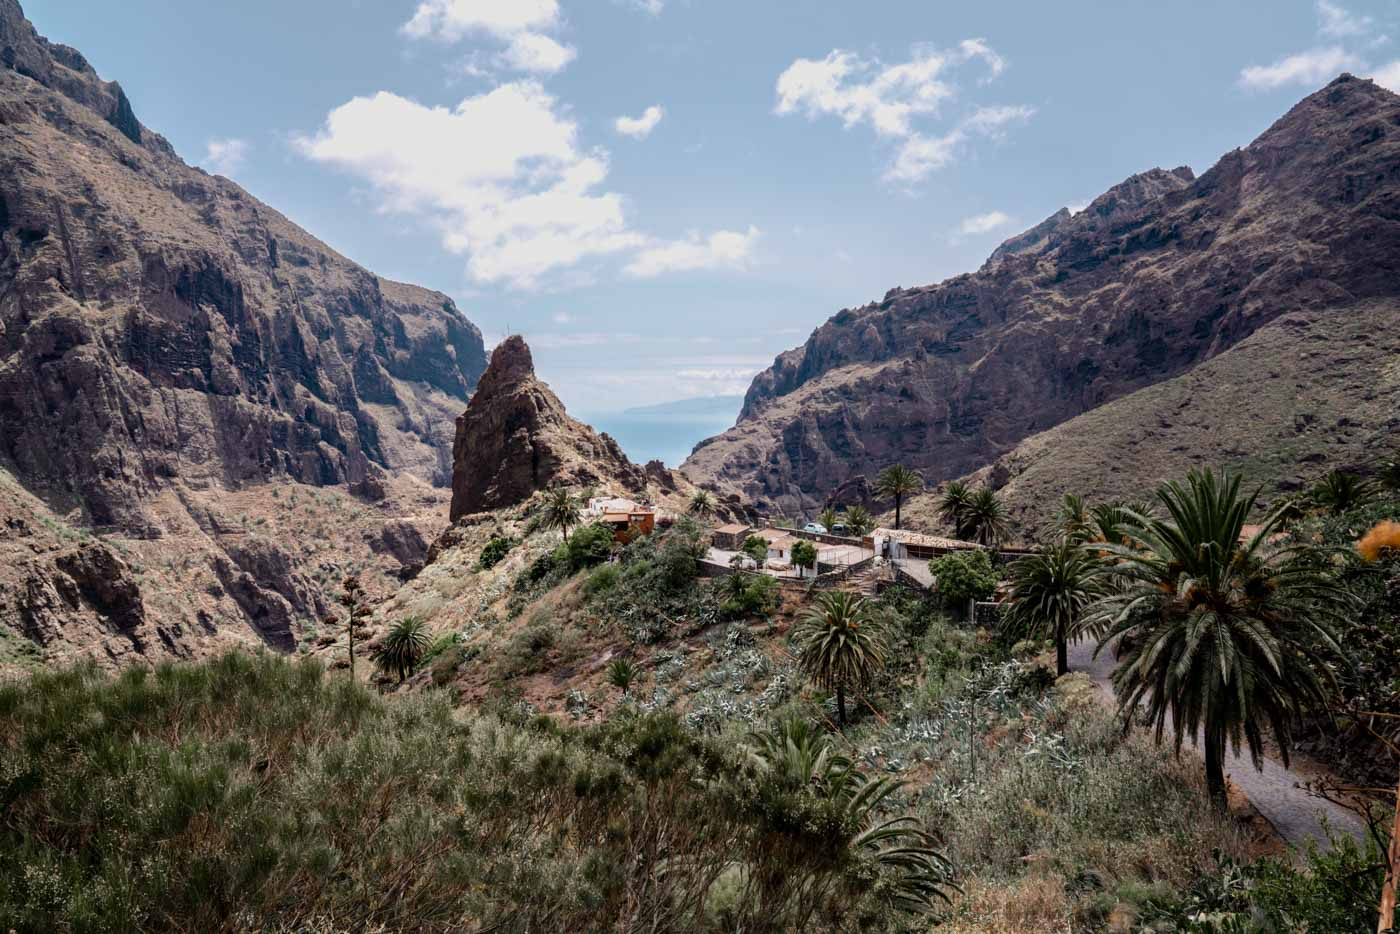 Masca - Masca is a charming little village in the South of Tenerife nestled in a gorge.